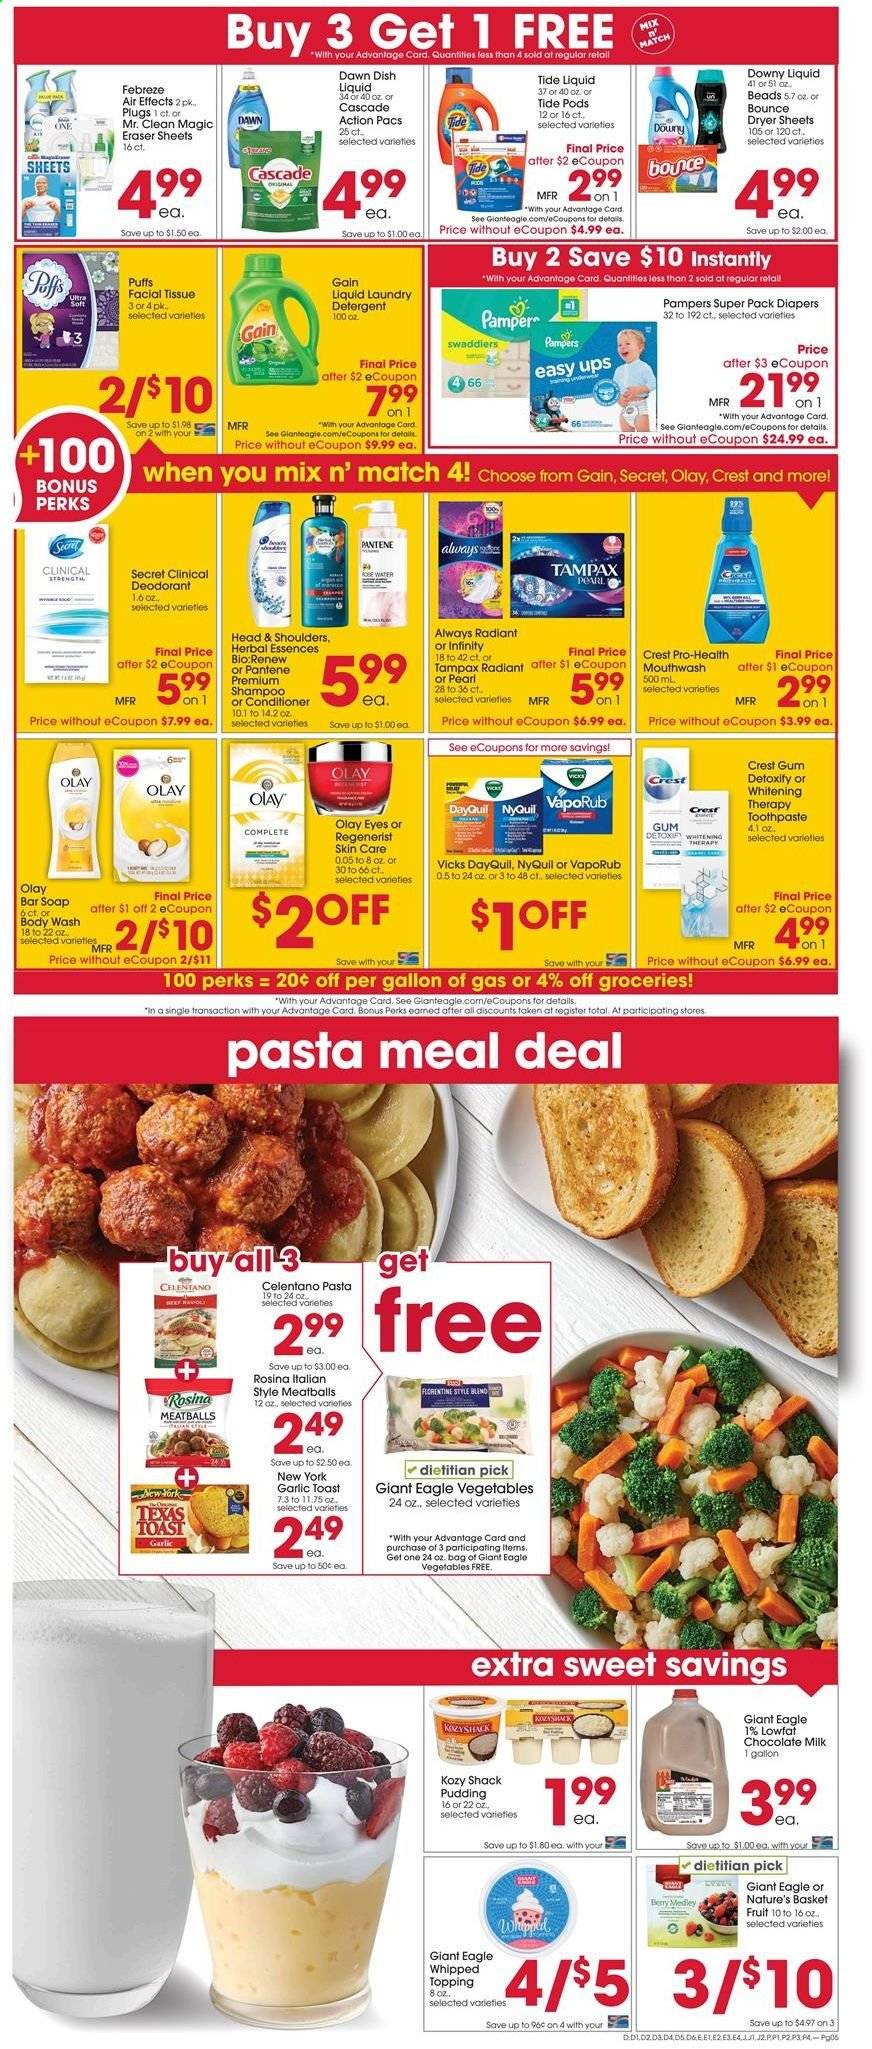 Giant Eagle Flyer  - 09.12.2019 - 09.18.2019. Page 5.